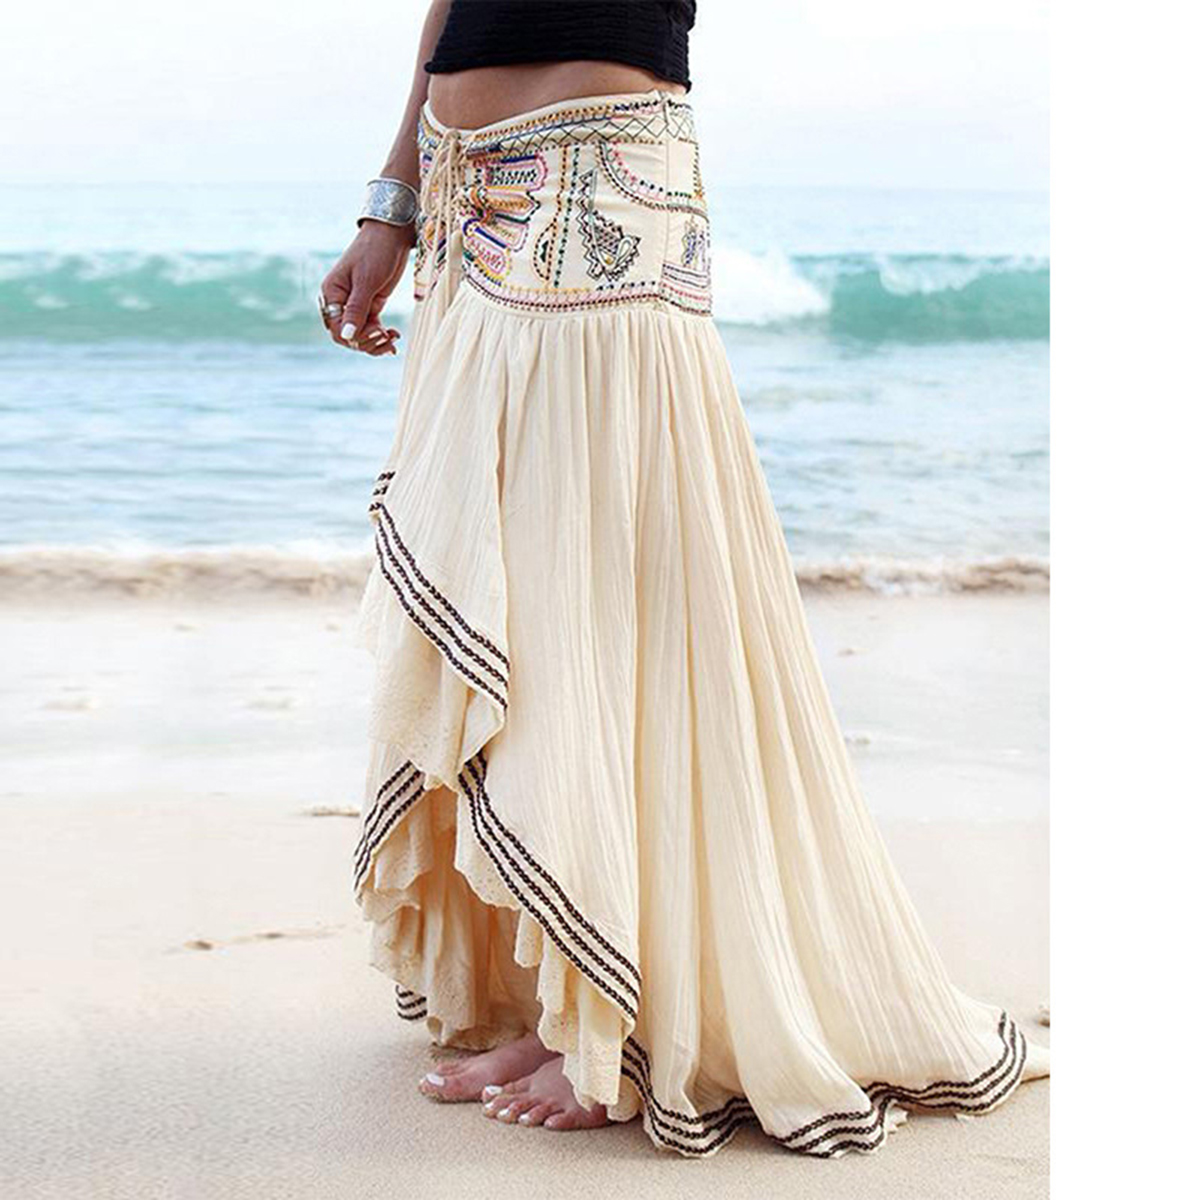 Jastie Hippie Sexy Embroidery Maxi Skirt Irregular Hem Vintage Faldas 2020 Summer Boho Beach Wear Casual Chic Women Long Skirts